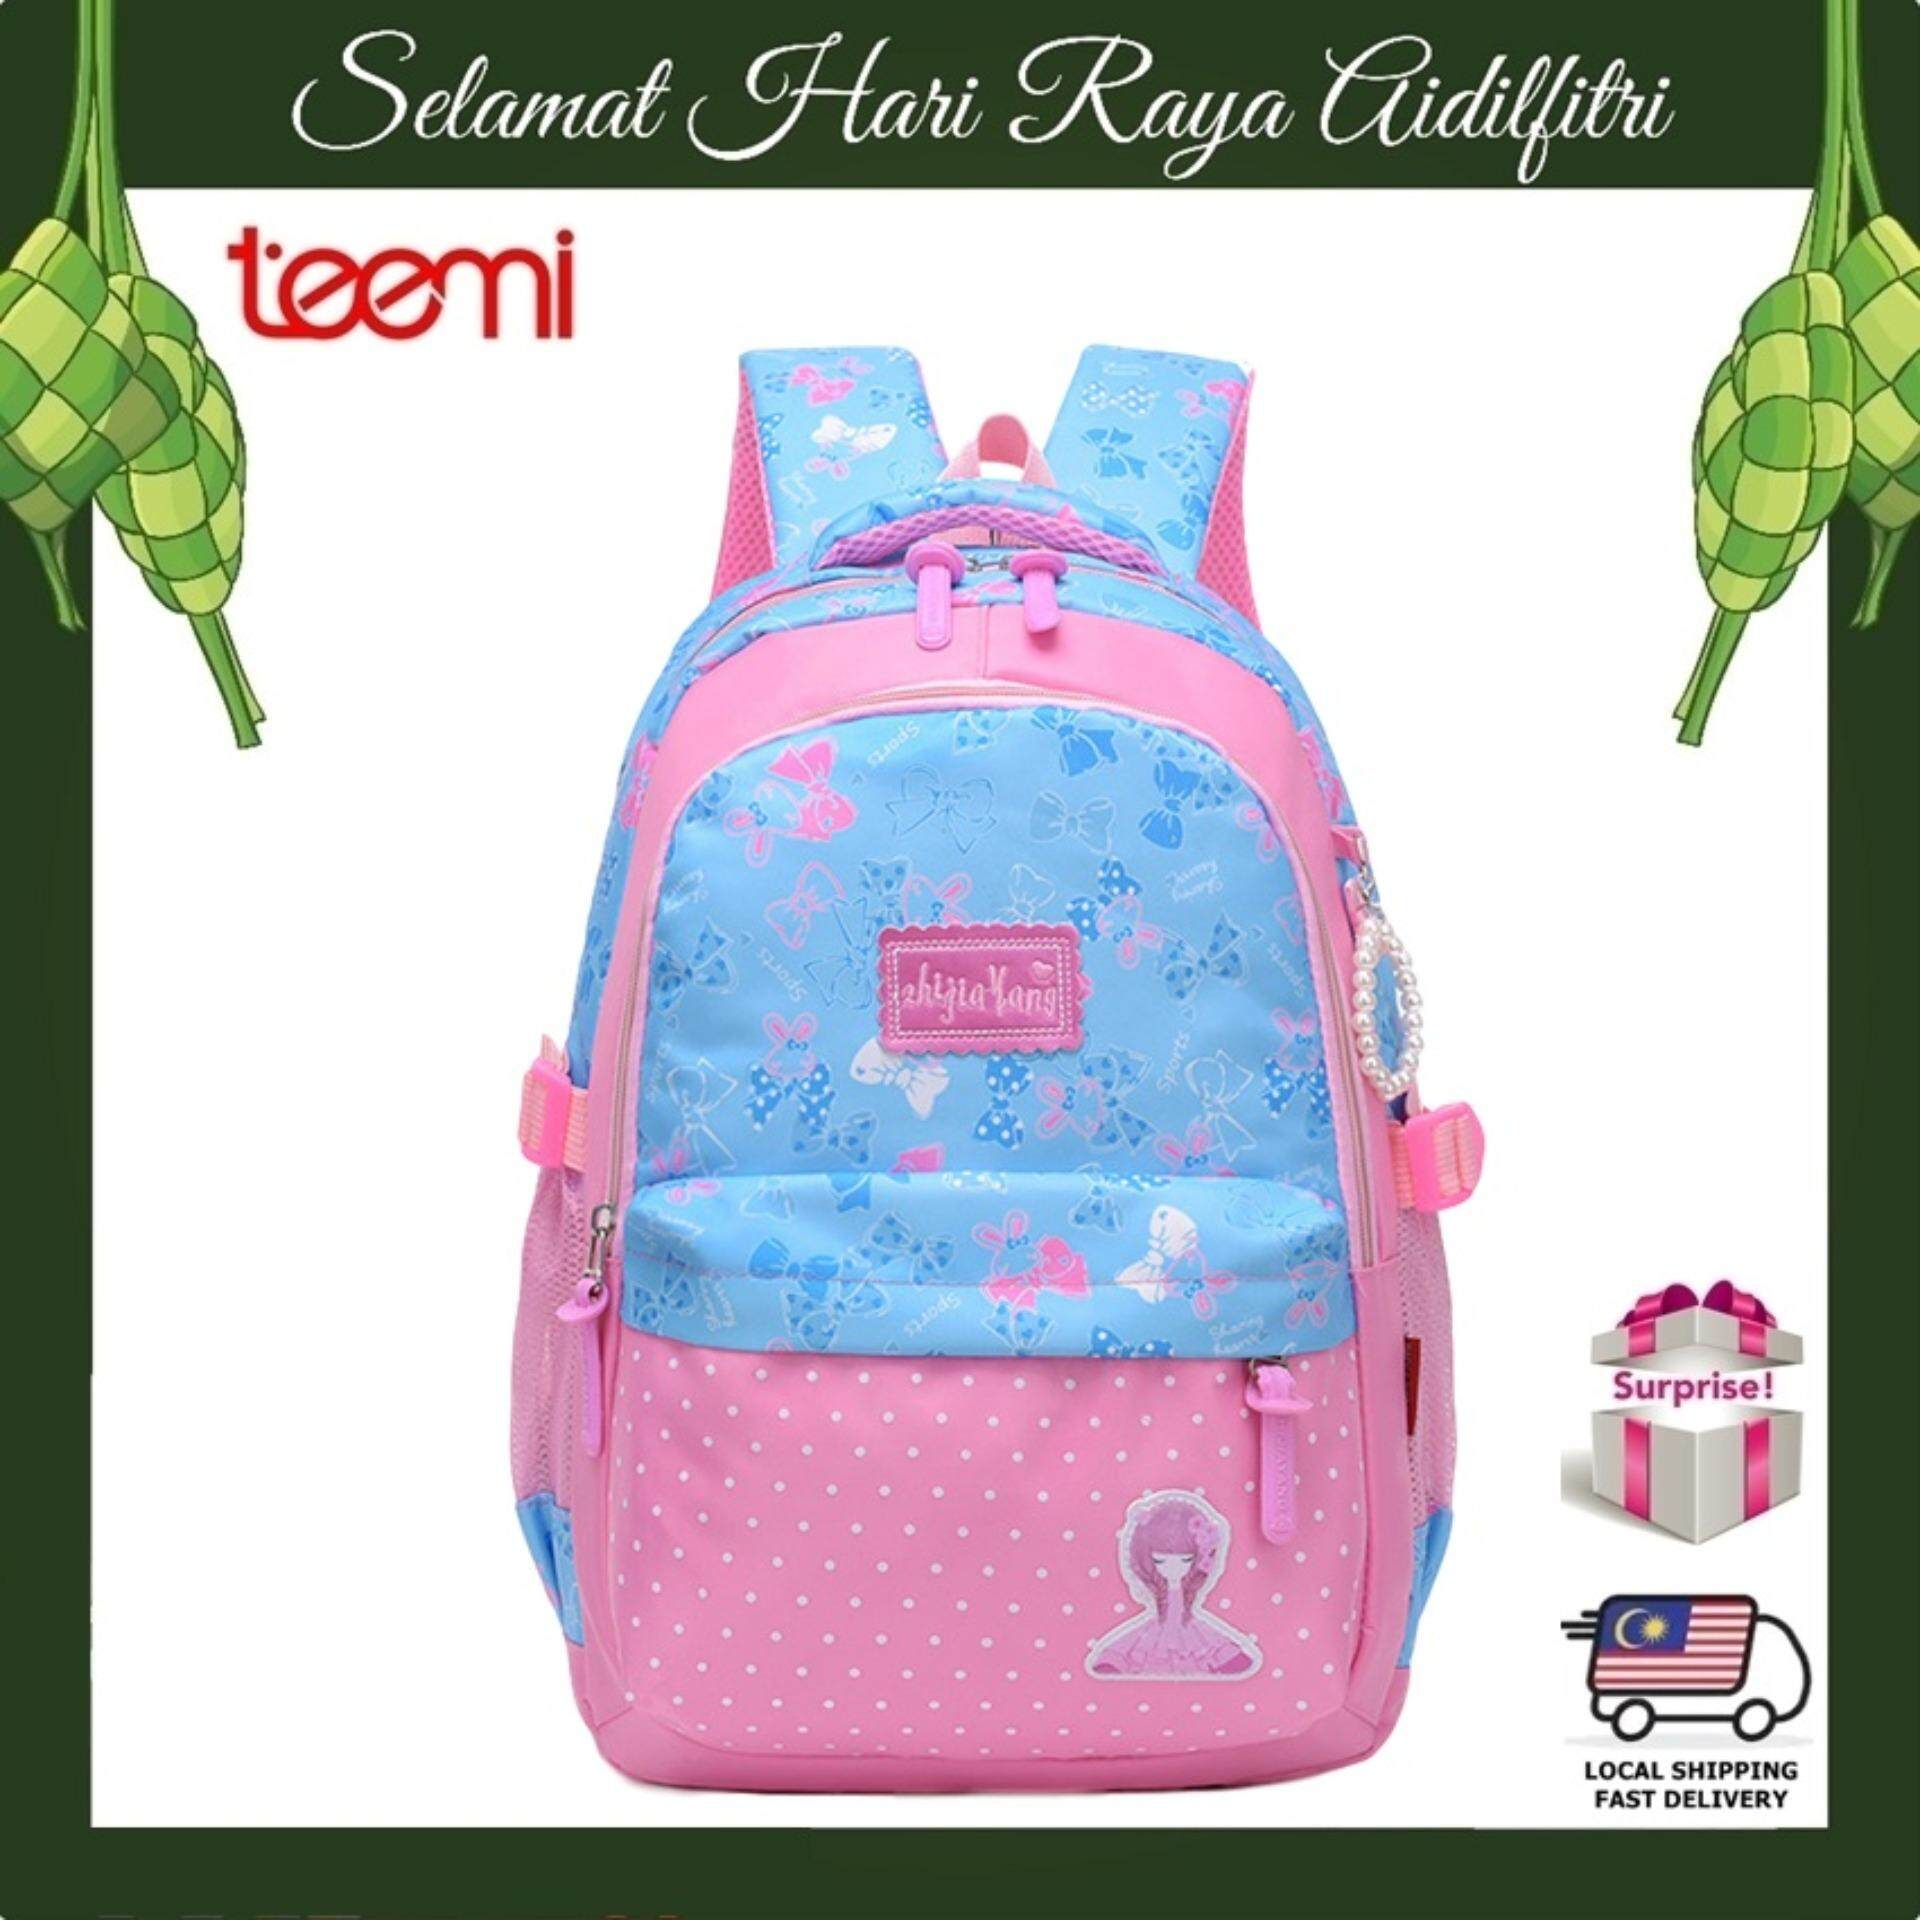 TEEMI Dreamy Candy Color Princess Girls Water Resistant Primary Secondary Nylon Orthopedic School Bag Ribbon Printing Kids Children Laptop Backpack - Light Blue